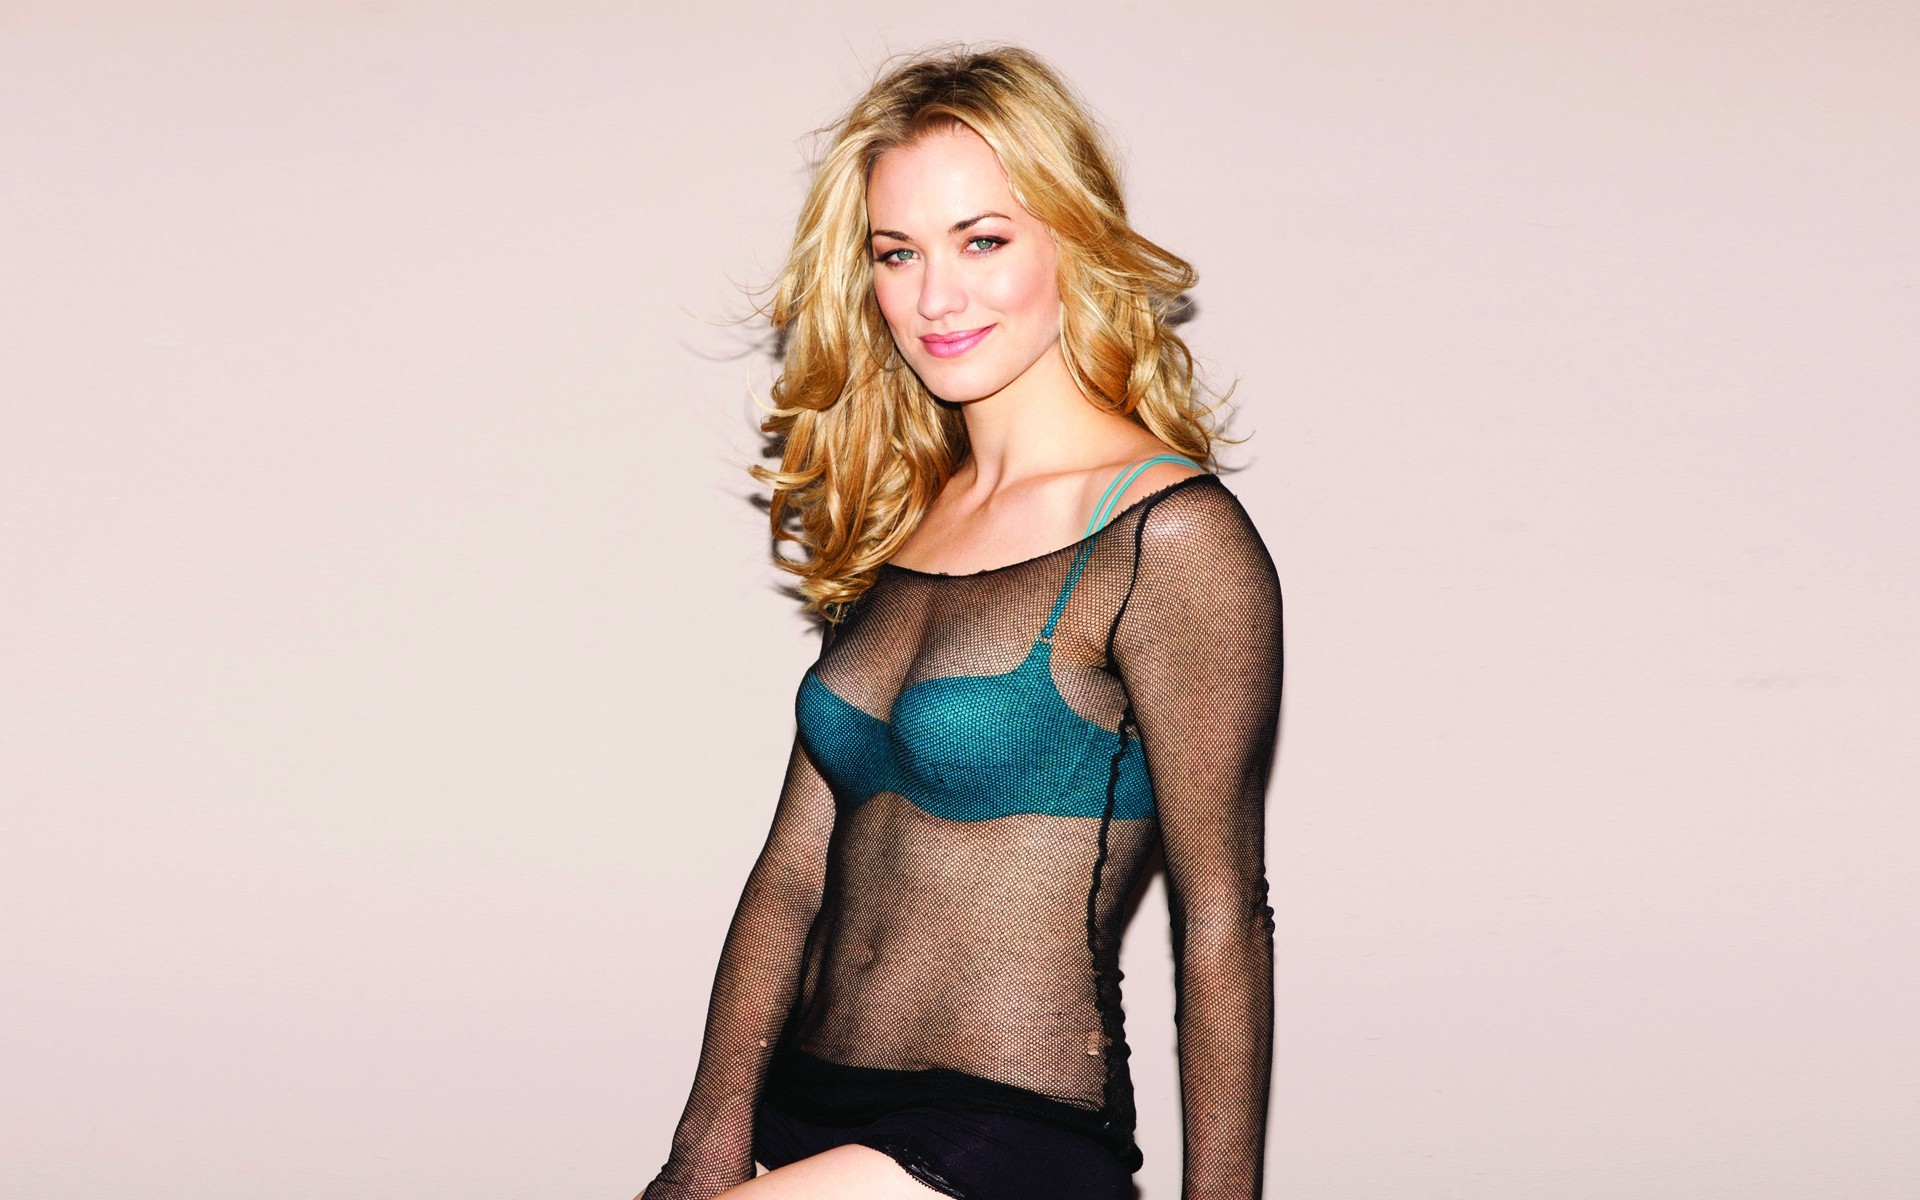 yvonne strahovski hd wallpaper ·①